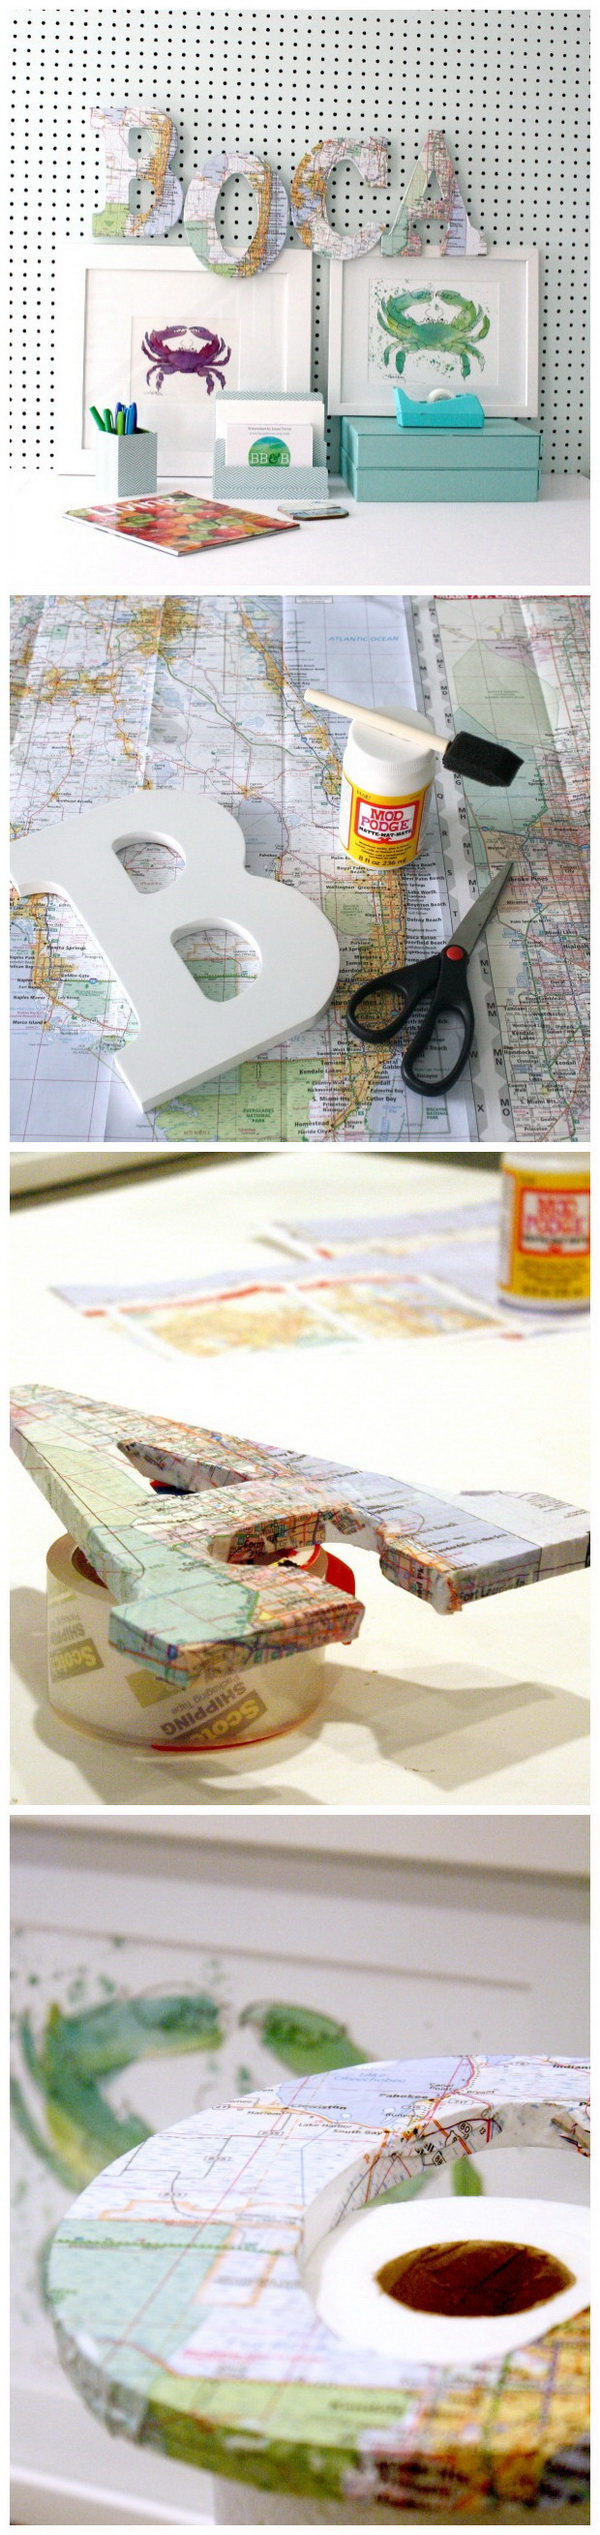 DIY Map Letters. Another DIY version of DIY decorative letters made with vintage map pages! Perfect for the wall decor of a study room!